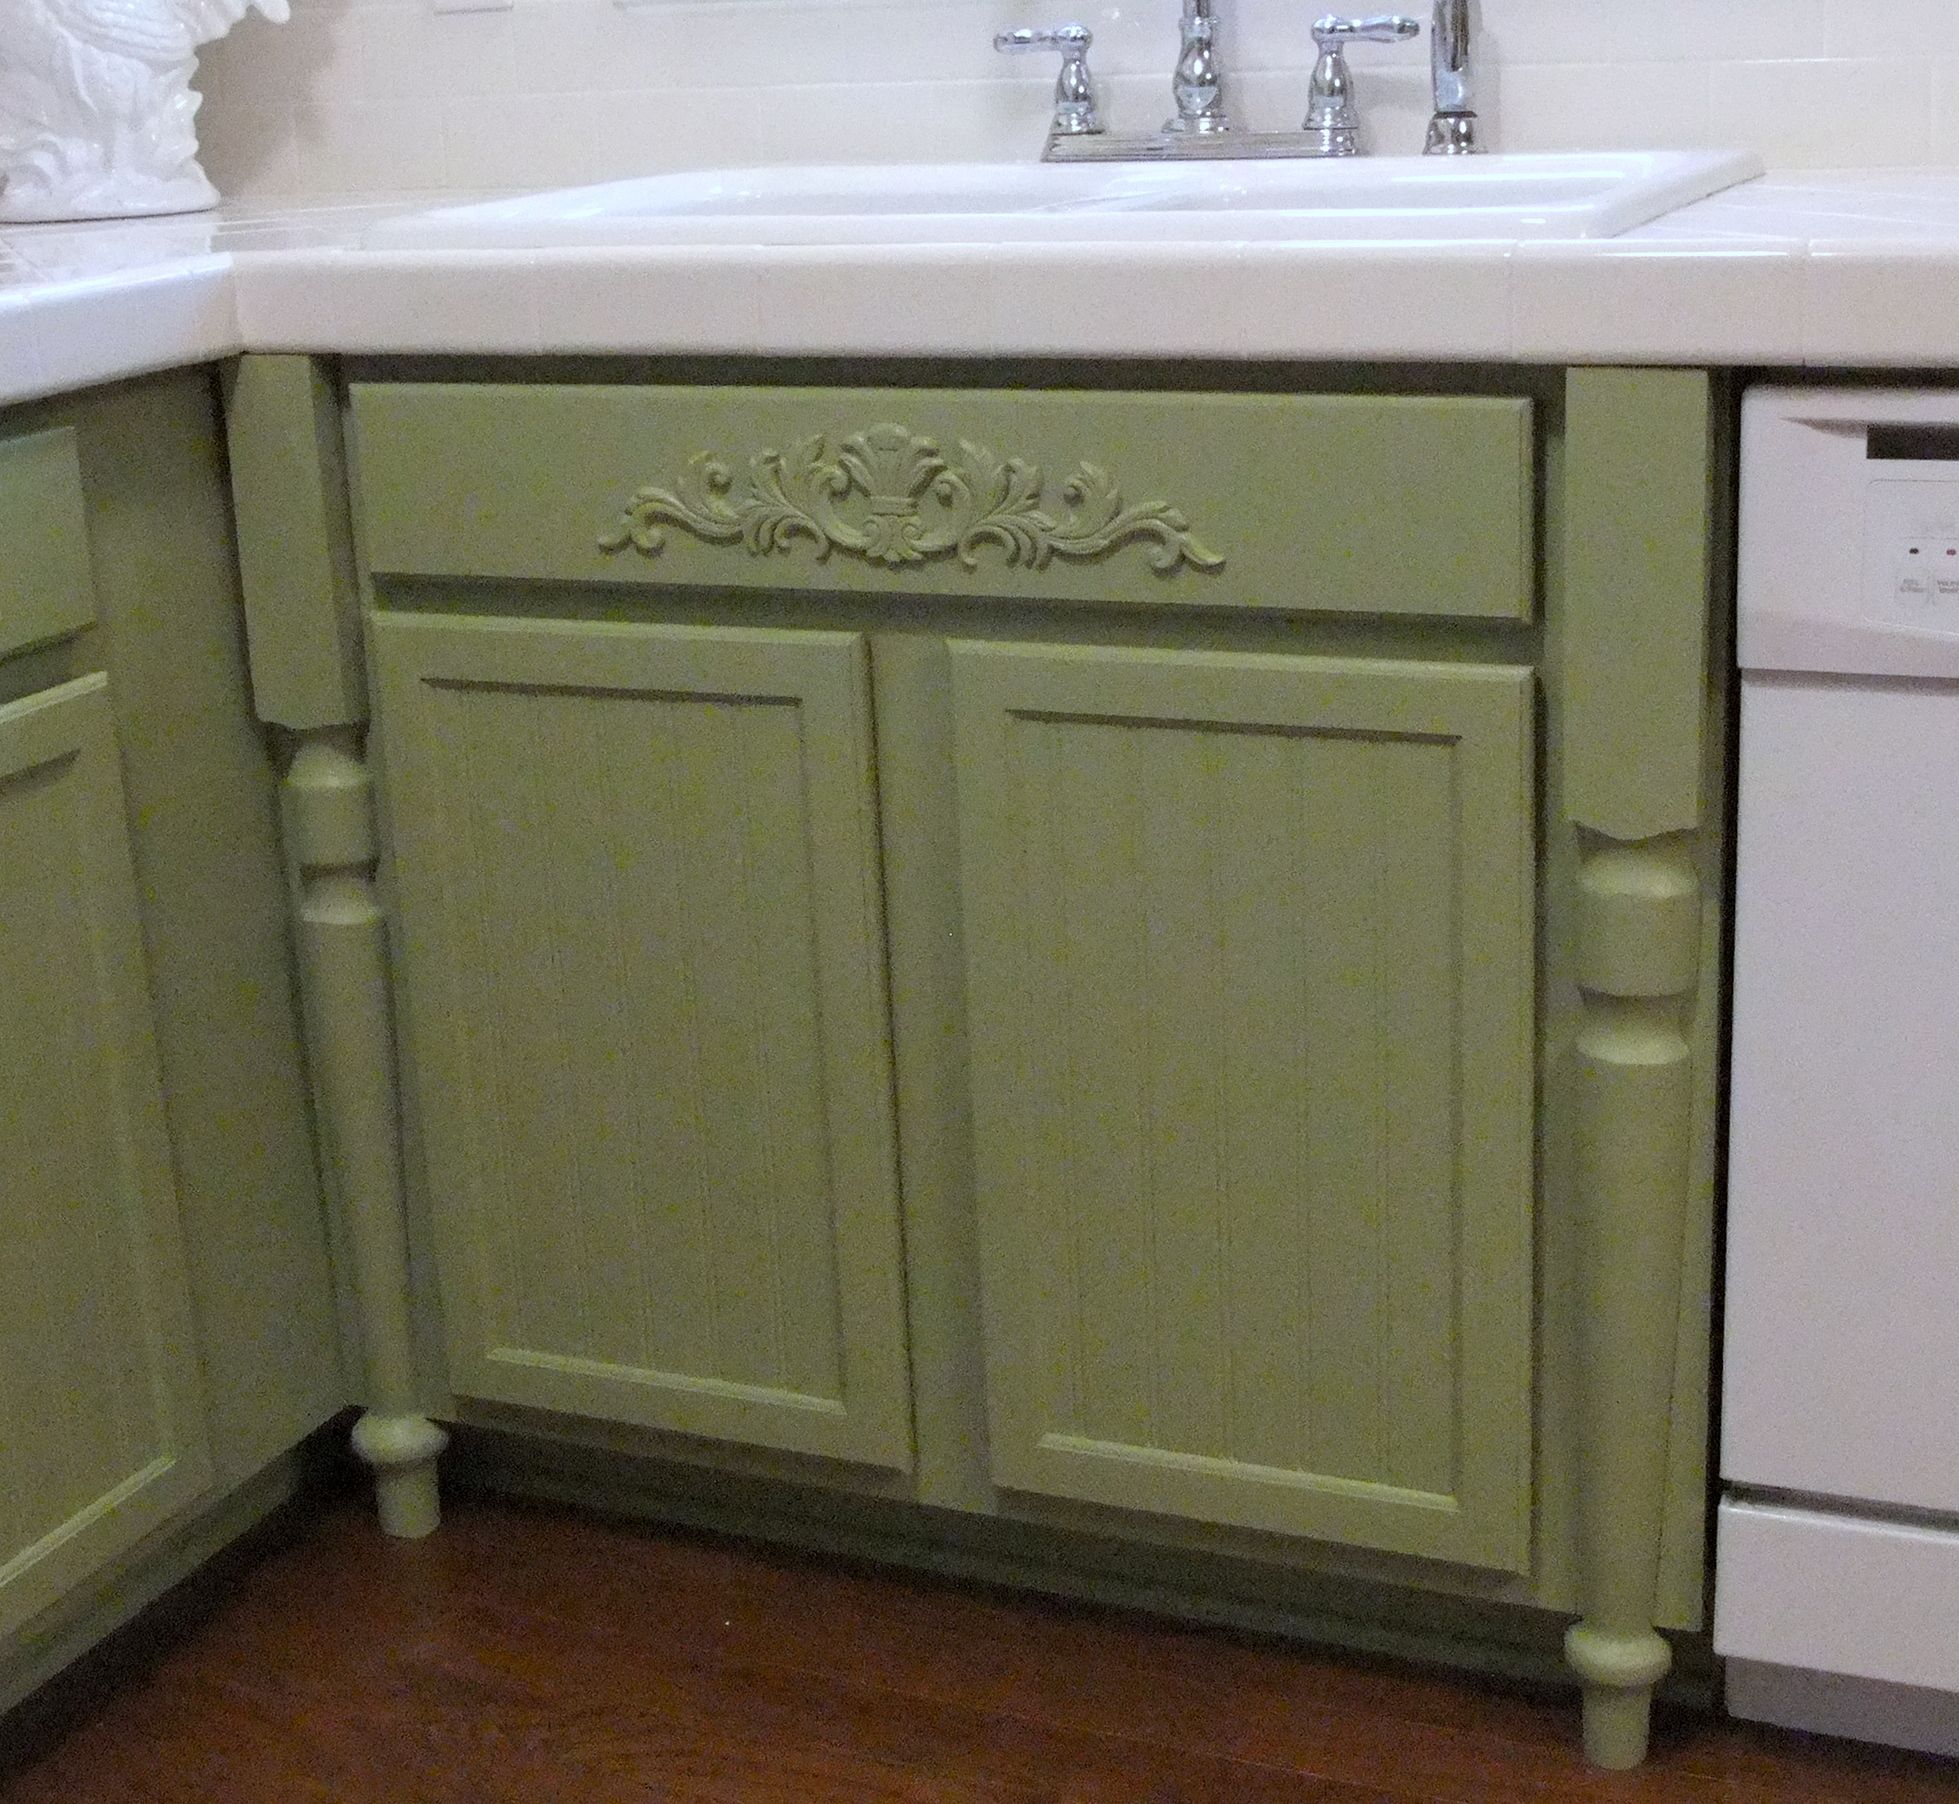 Love The Legs On This Kitchen Sink Cabinet...maybe Should Try This When I Paint The Cabinets